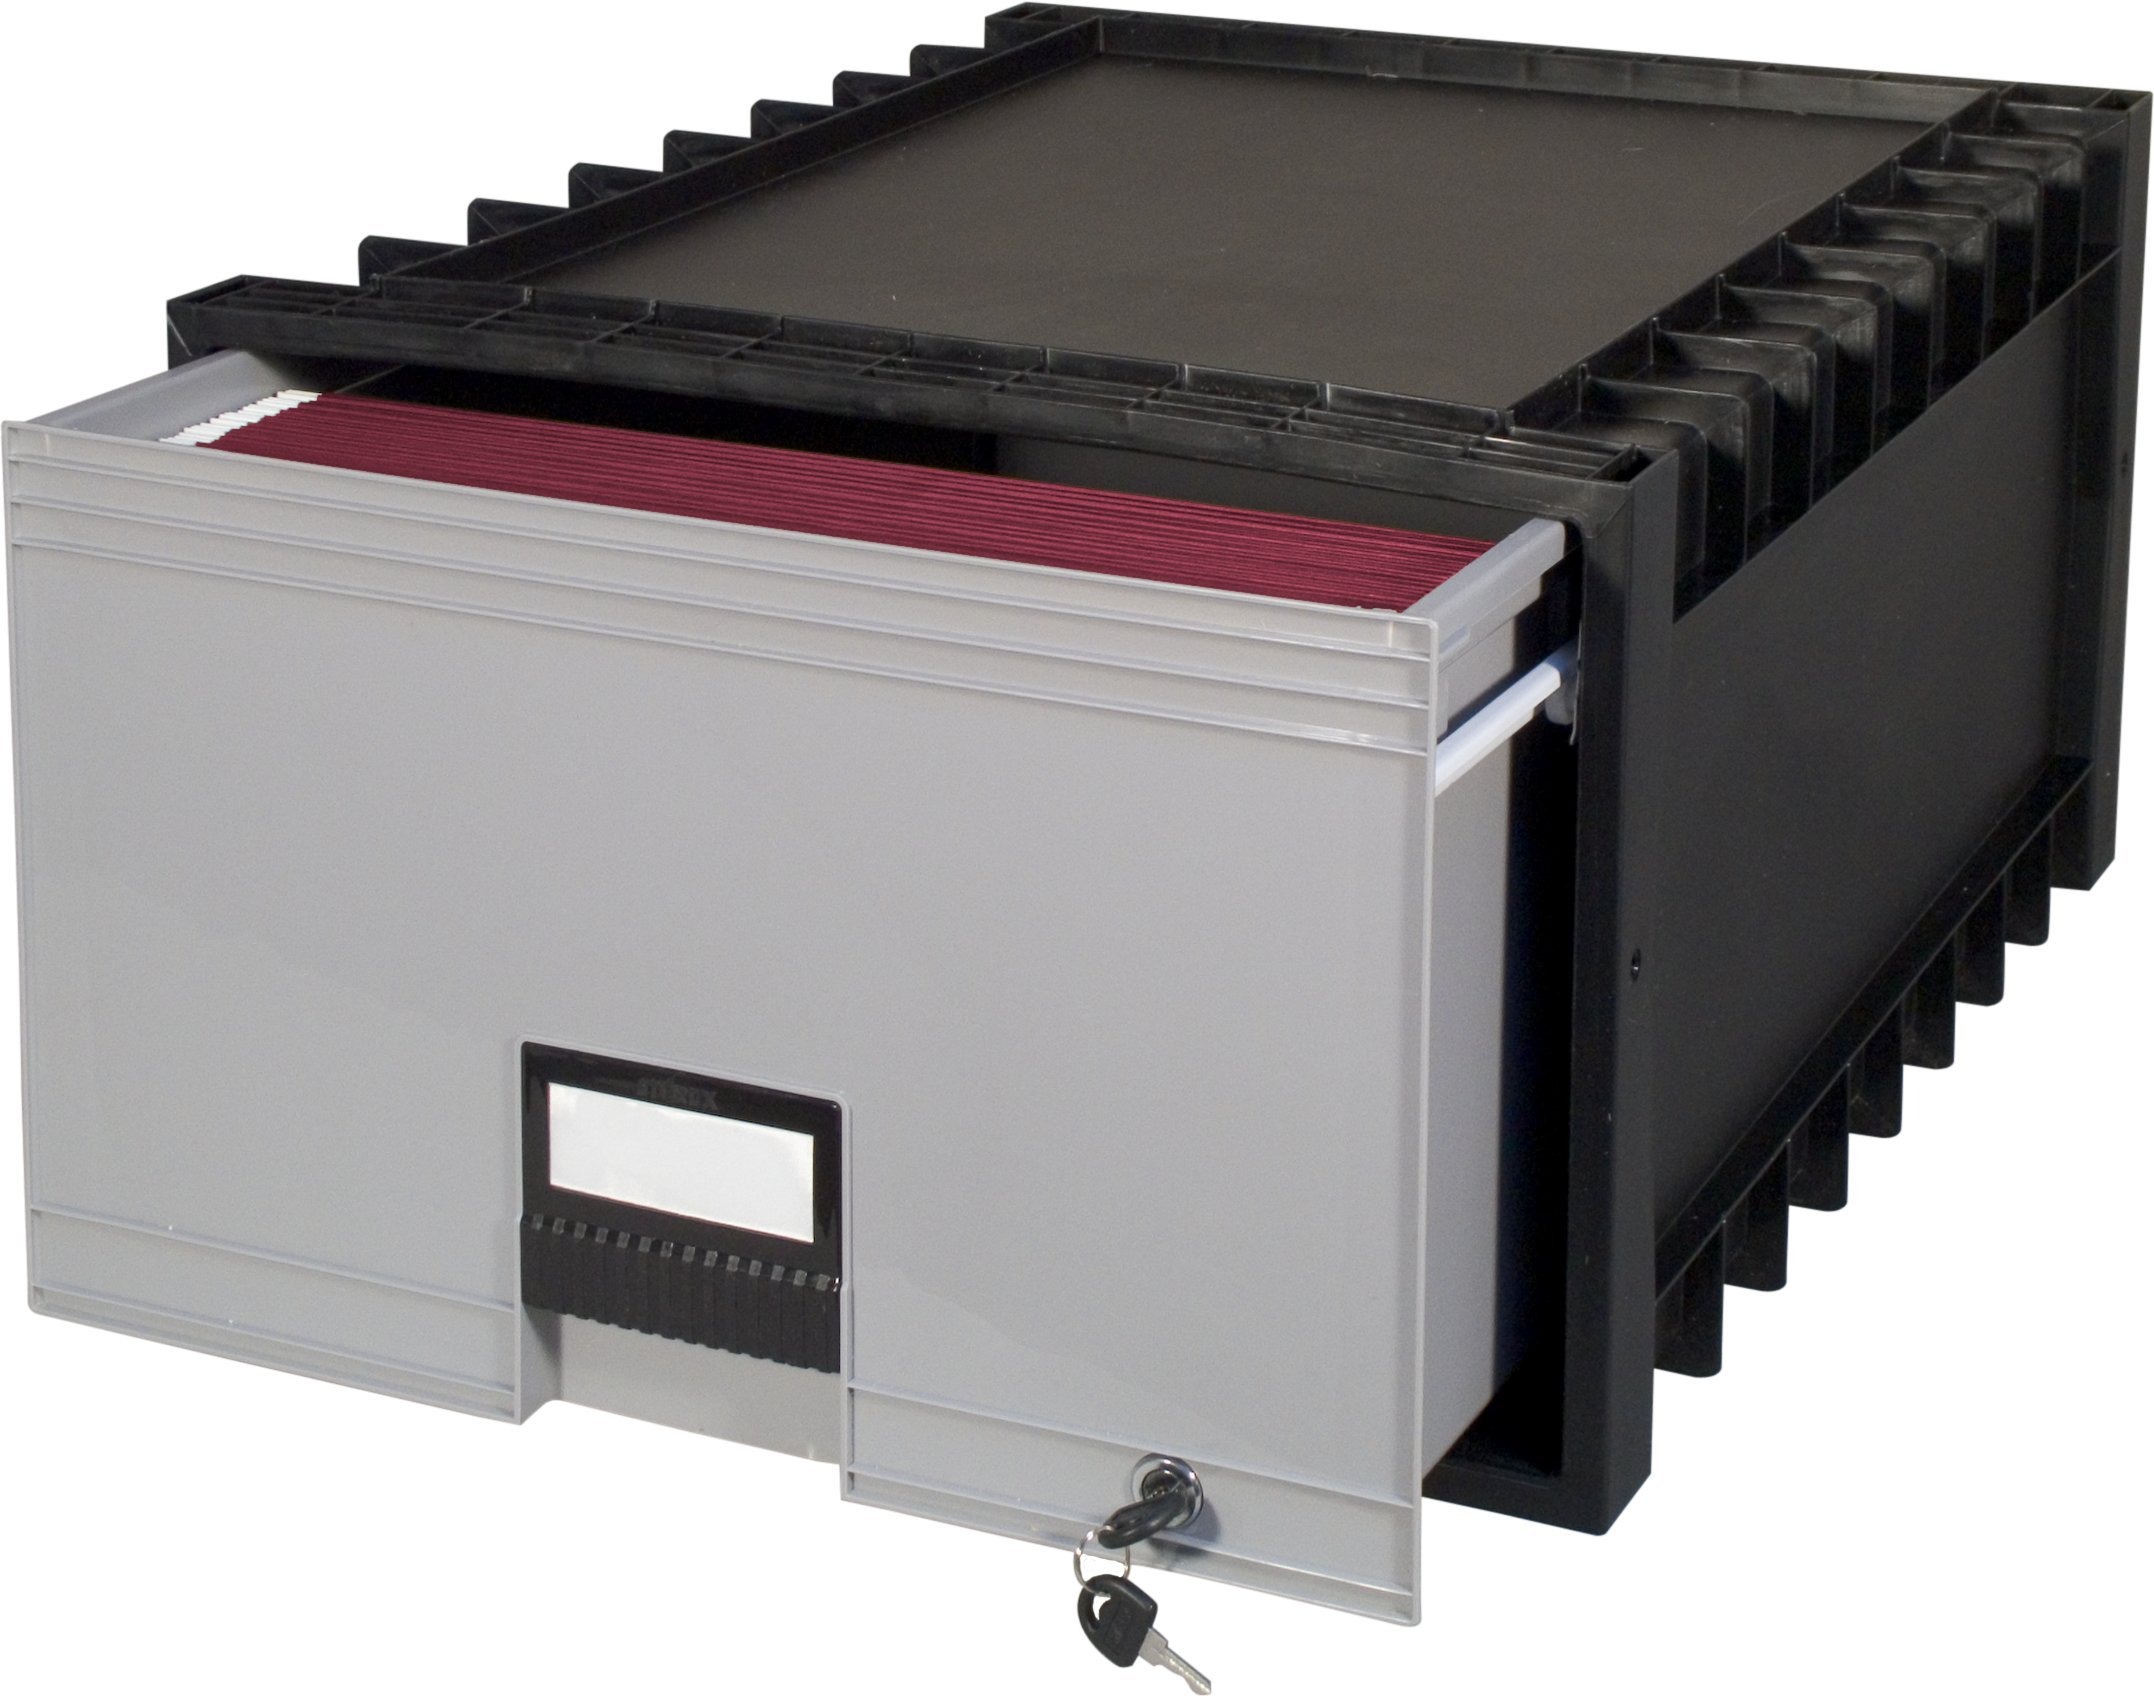 Storex 24-Inch Archive Locking Storage Box for Legal Size Files, Black/Grey (61155U01C)